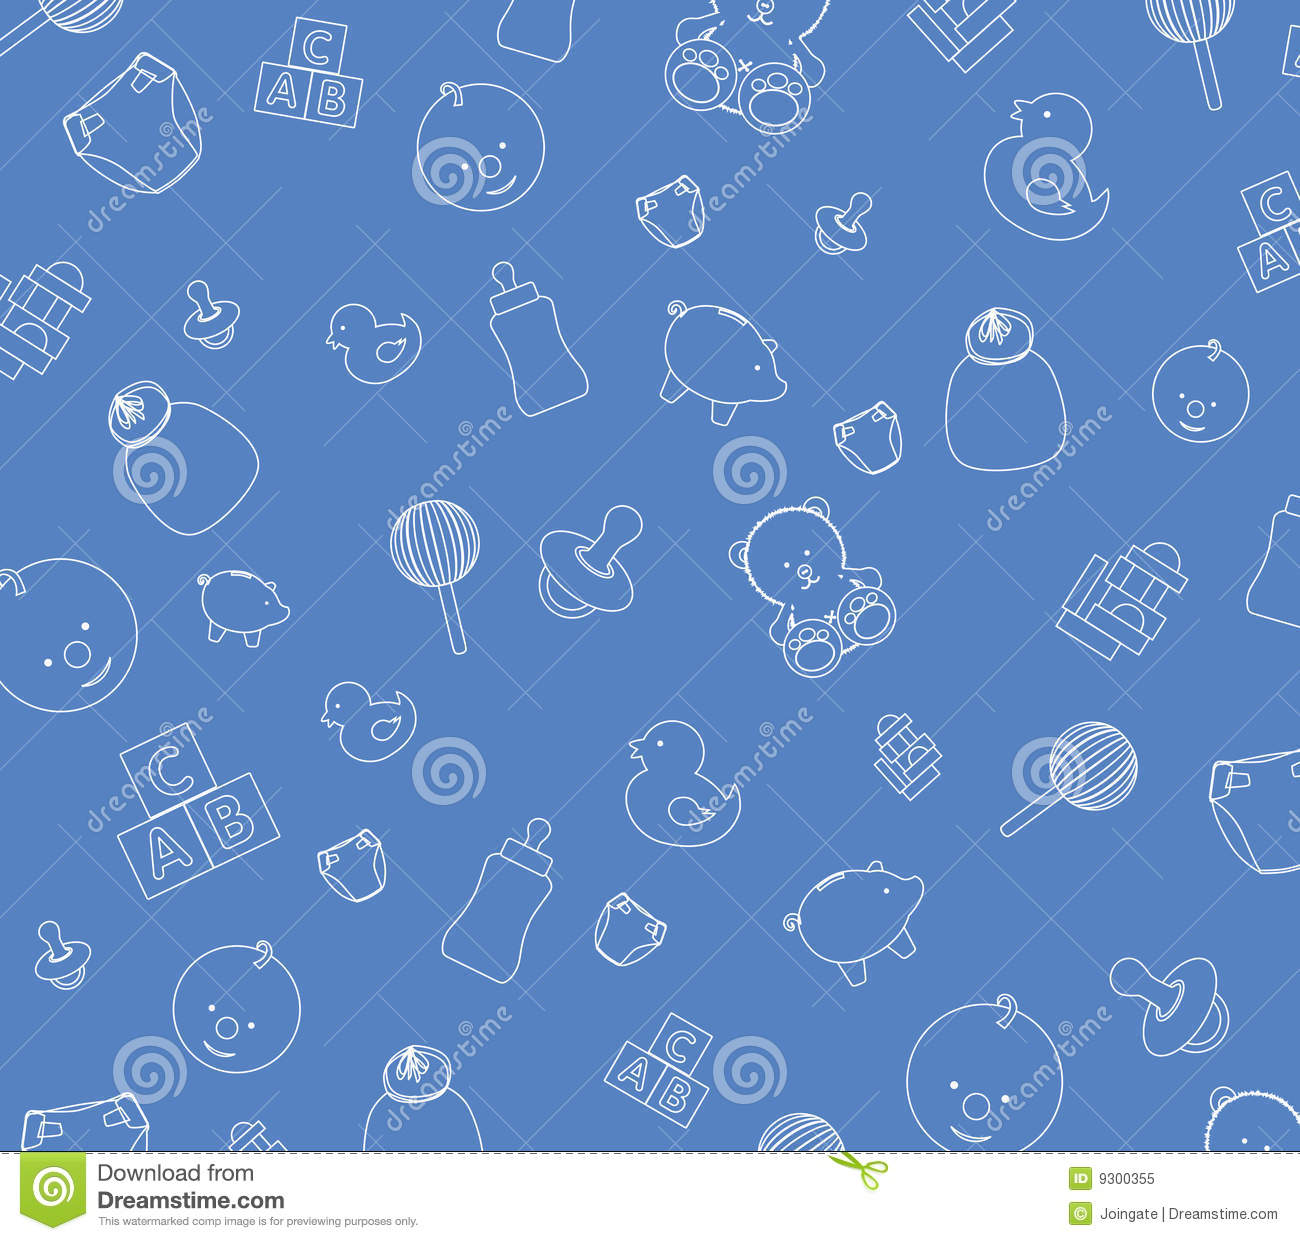 Papel de parede do beb azul foto de stock royalty free - Papel de pared para bebes ...